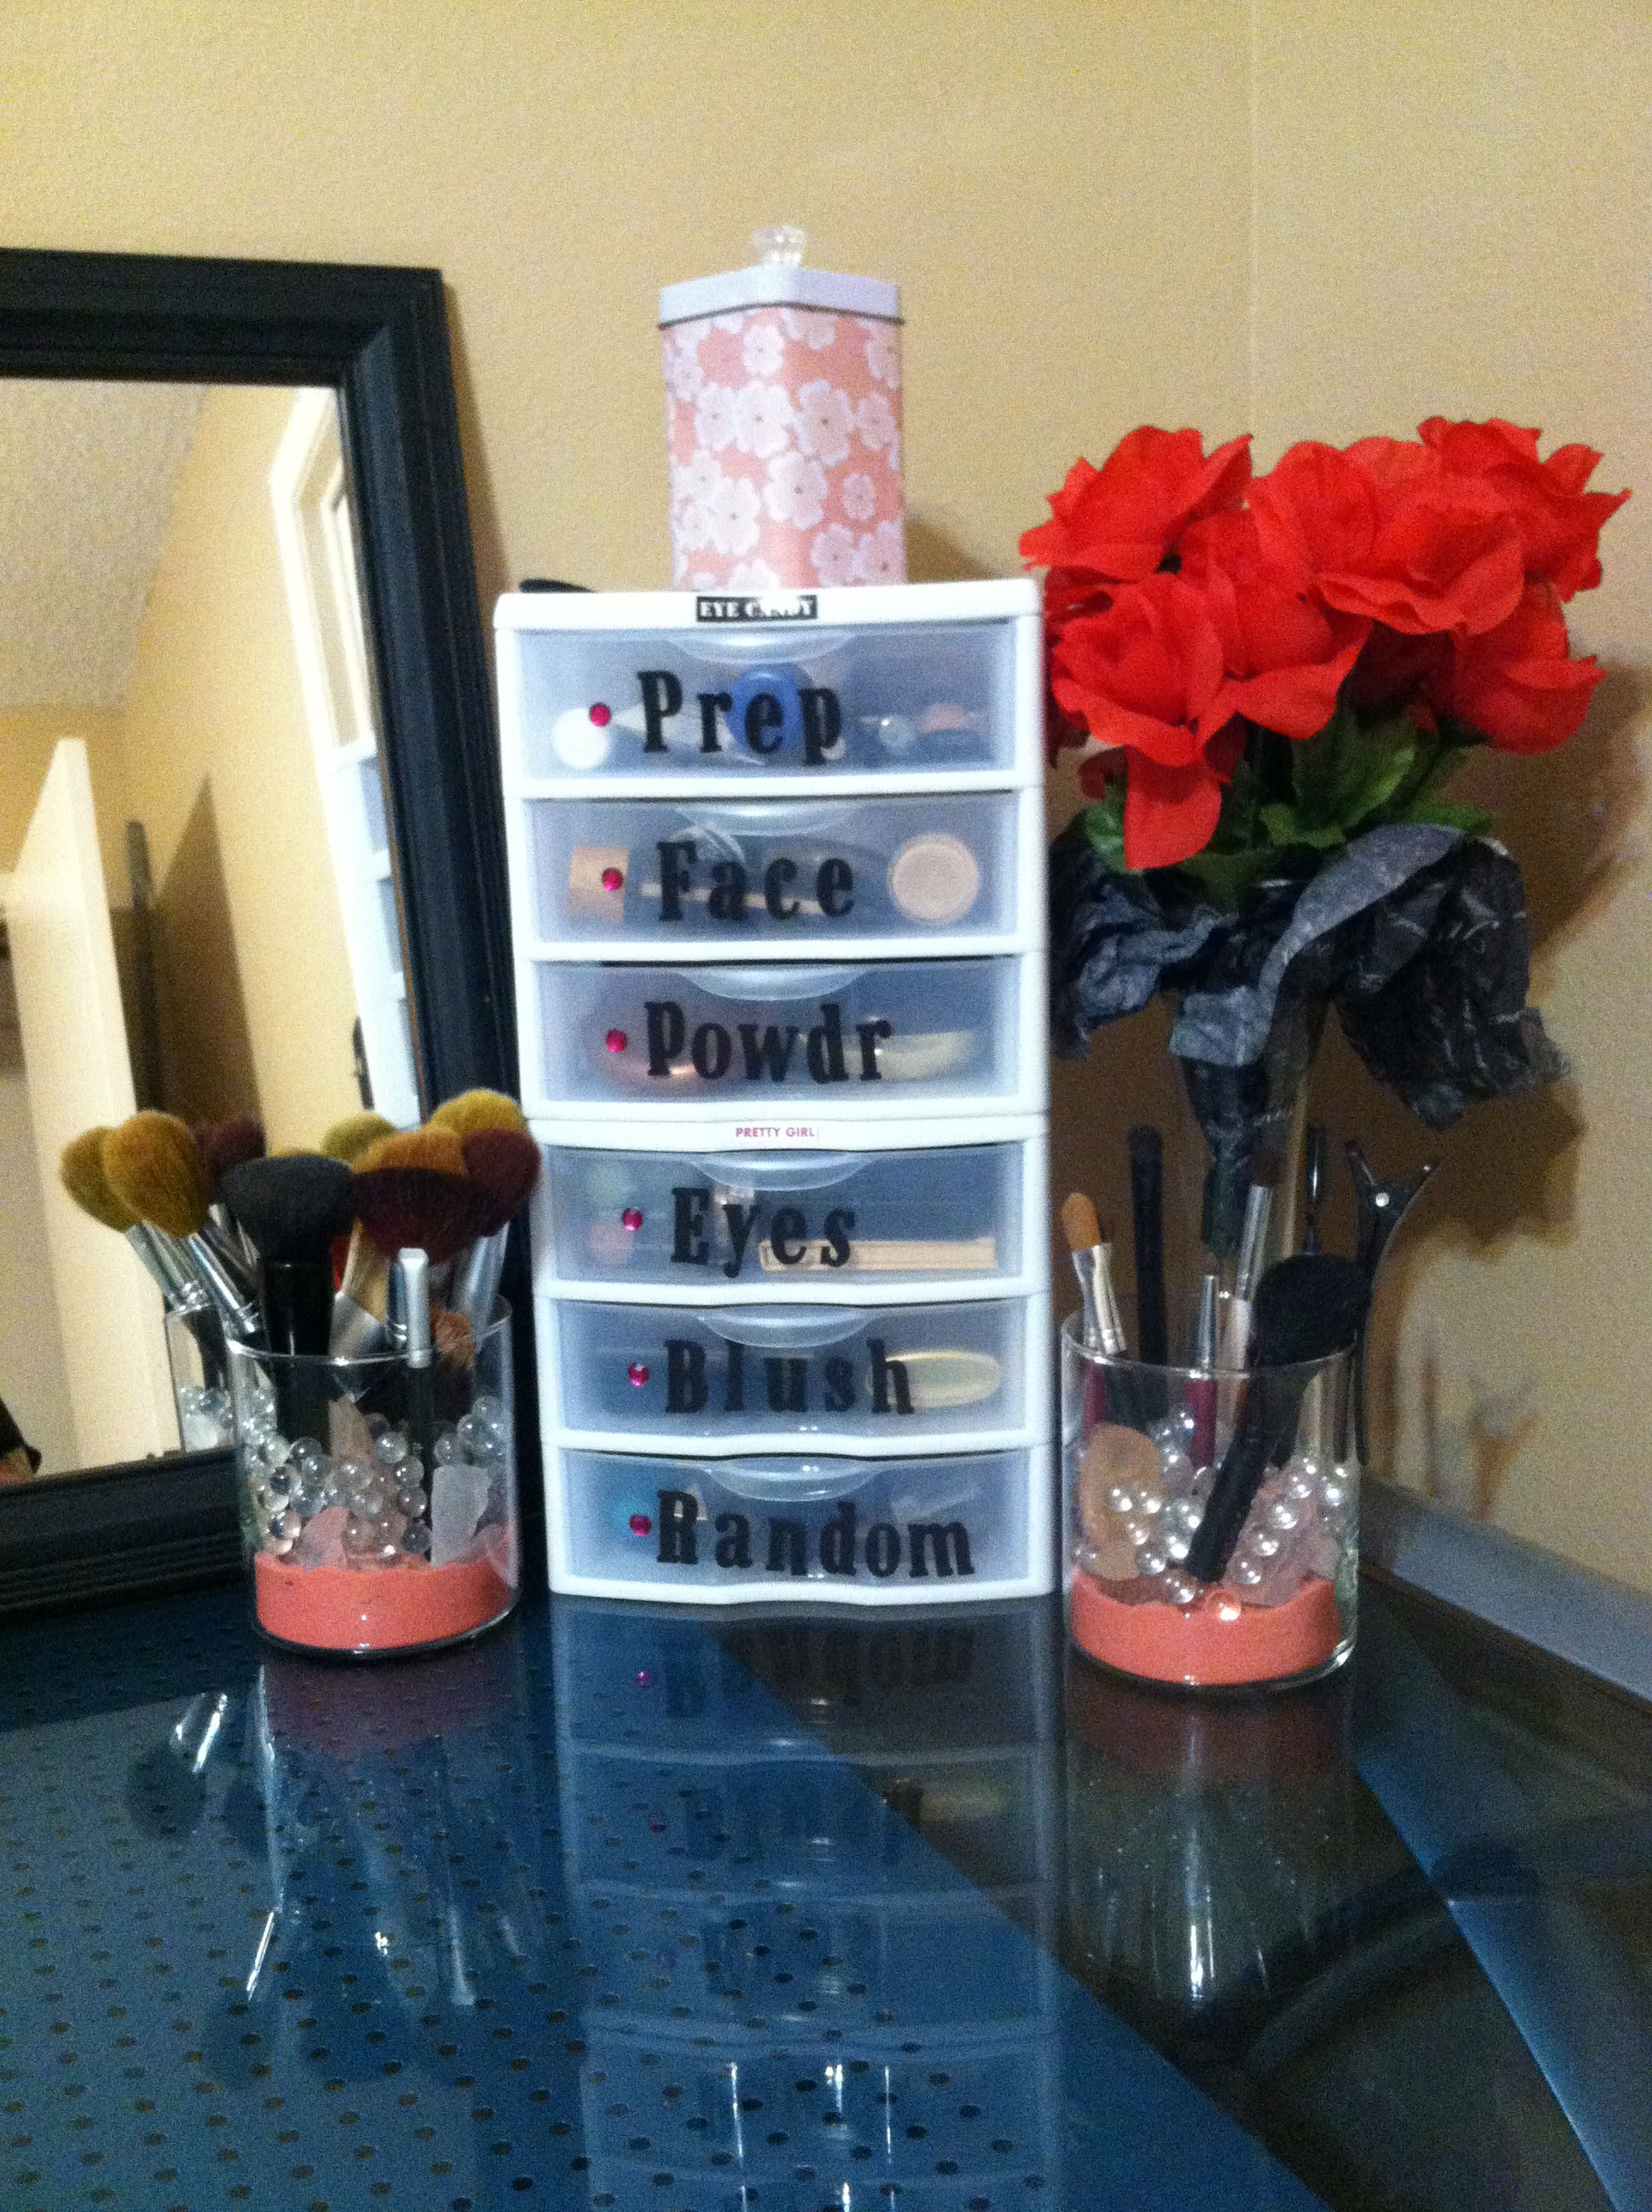 Pin by Shelby Corner on House and Home x  Make up storage, Diy